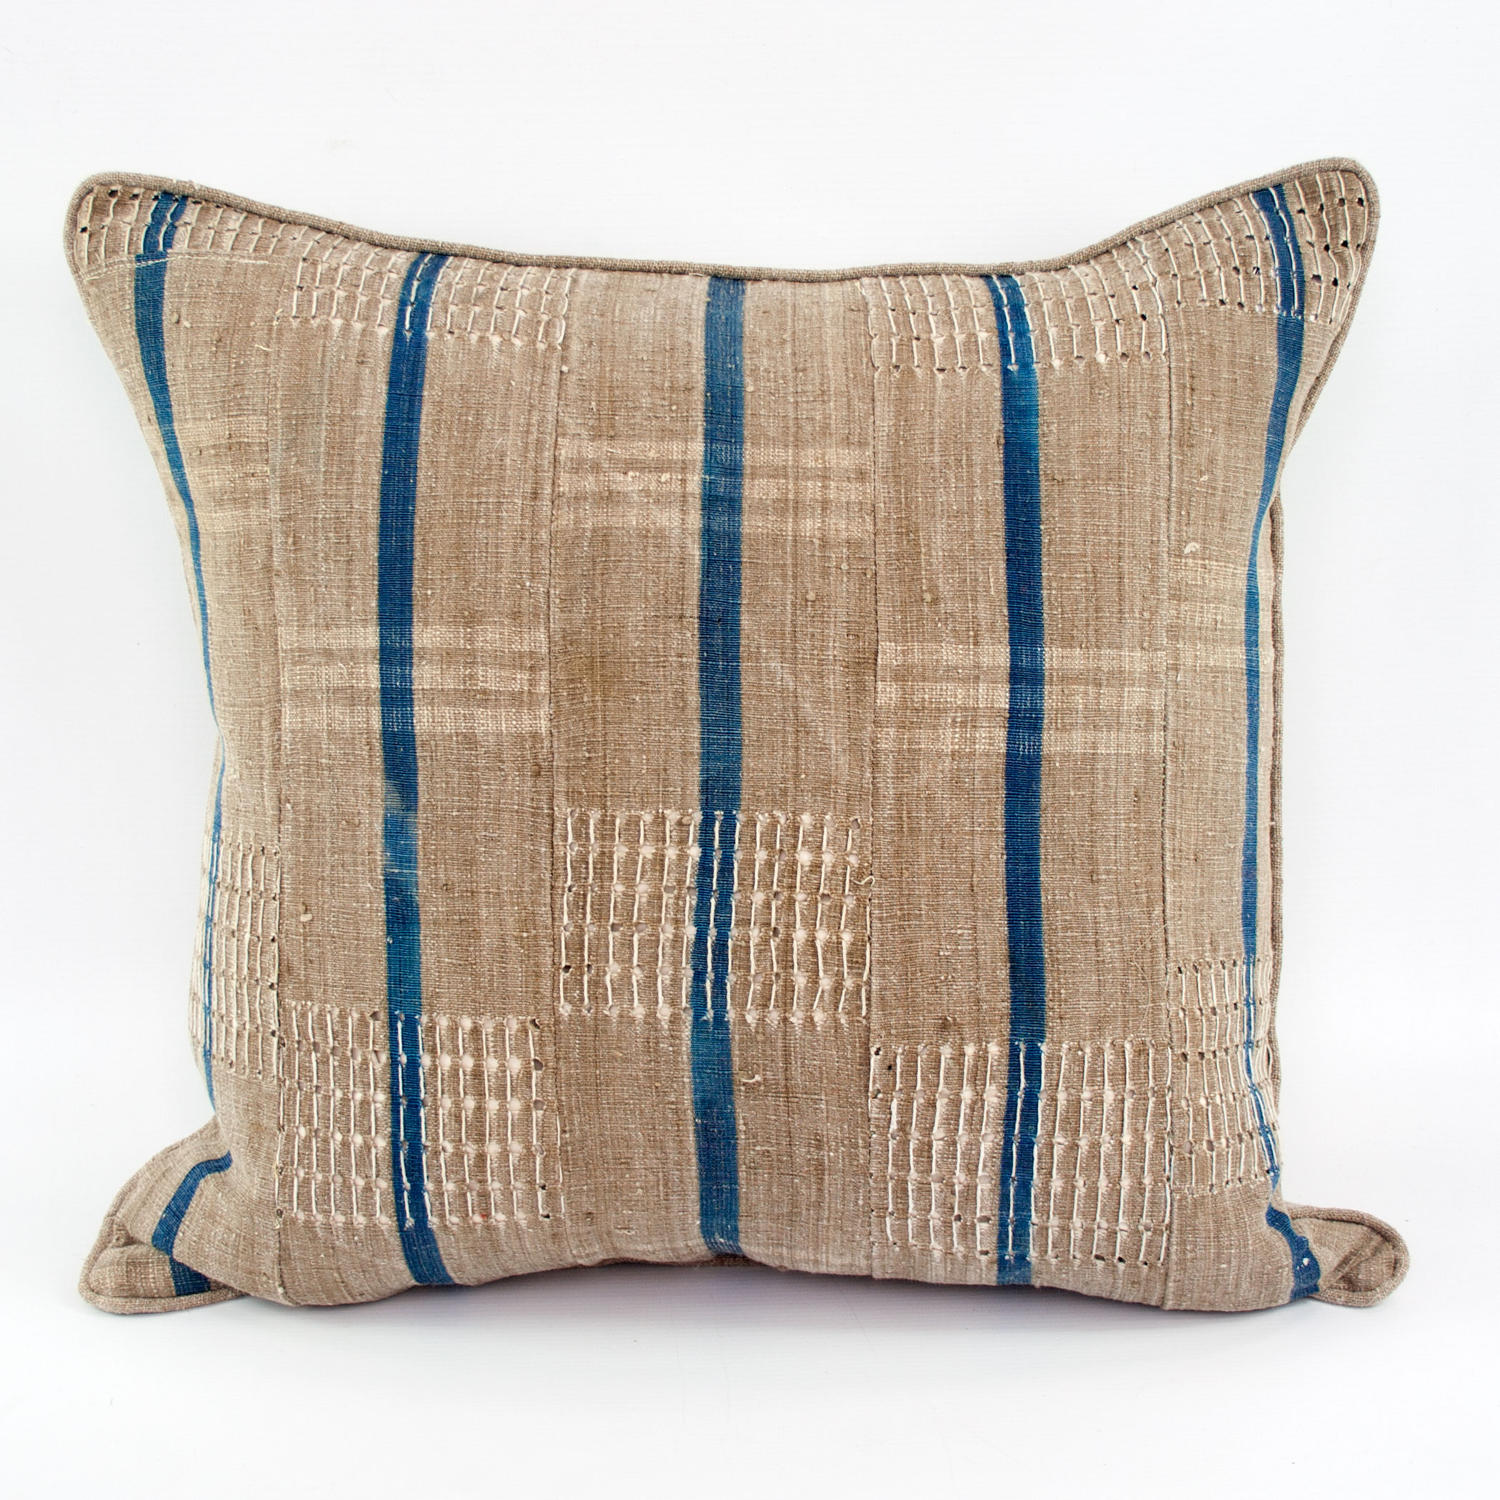 Yoruba Cushions with blue stripes